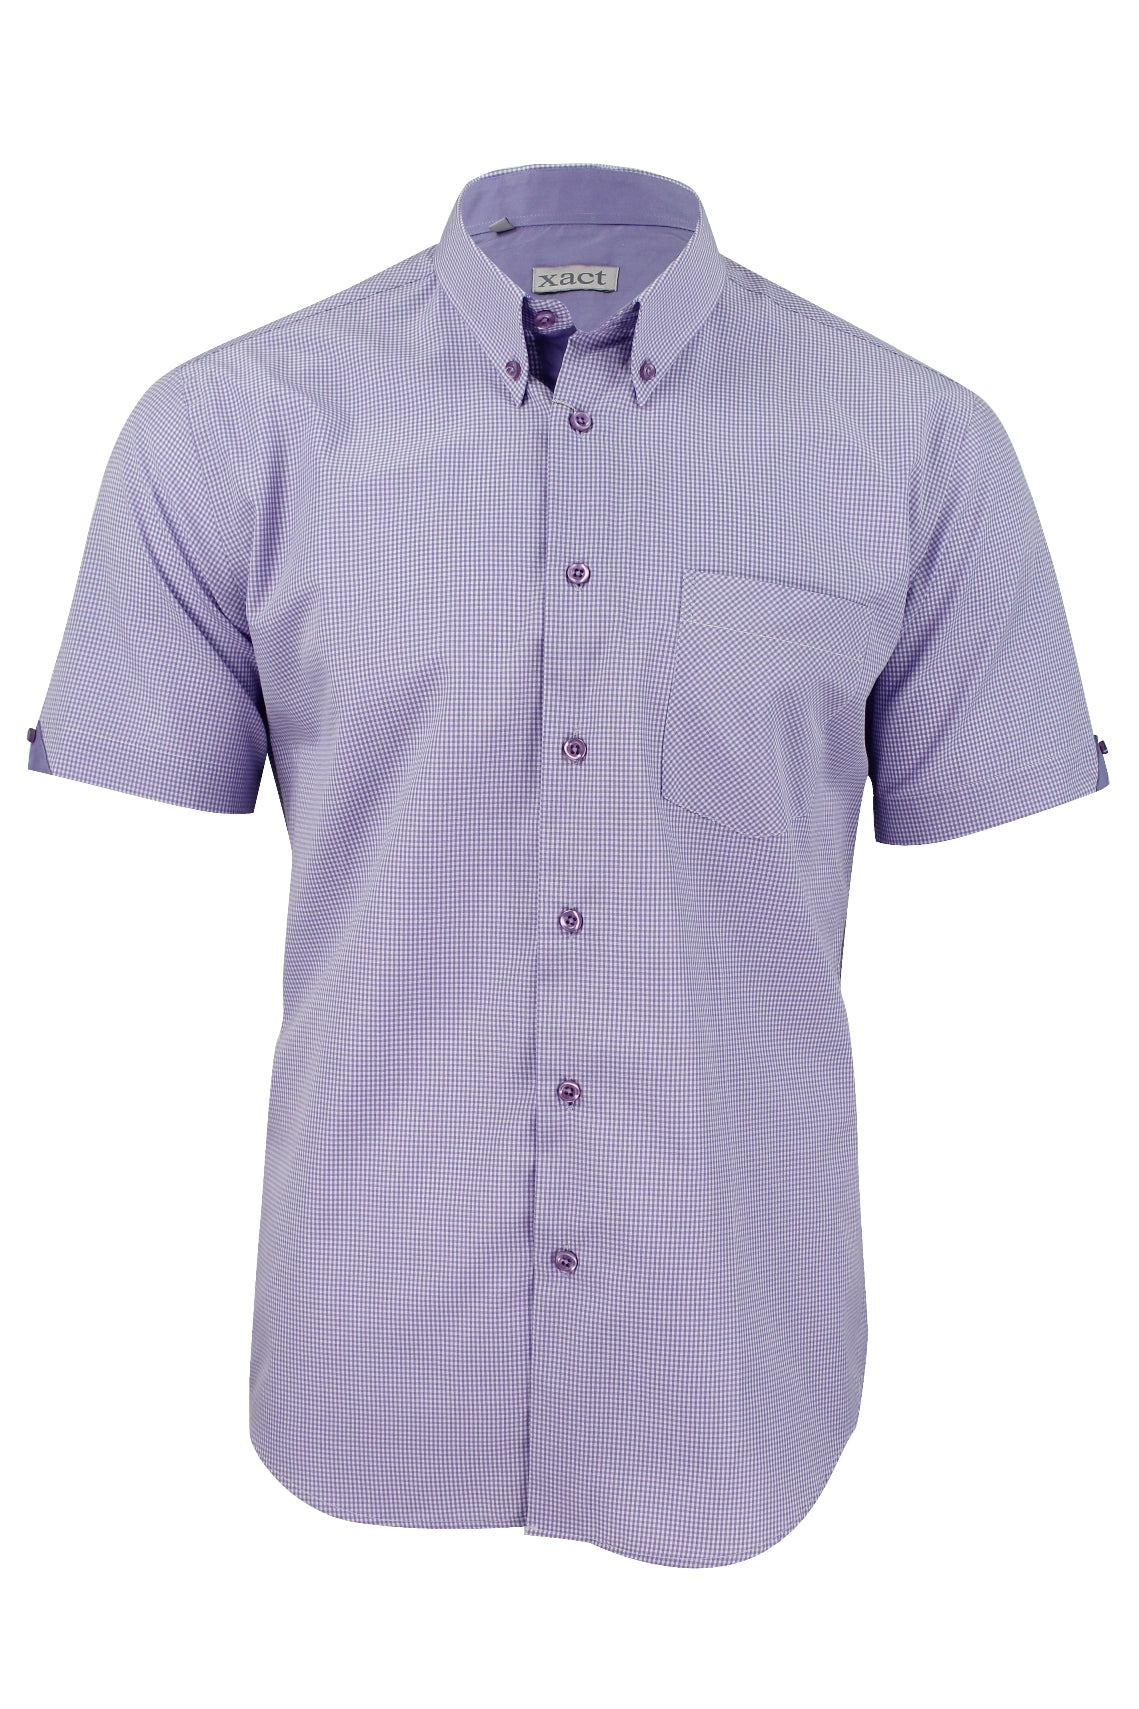 Mens Short Sleeved Shirt by Xact Clothing Micro Gingham Check_01_1510114_Lilac